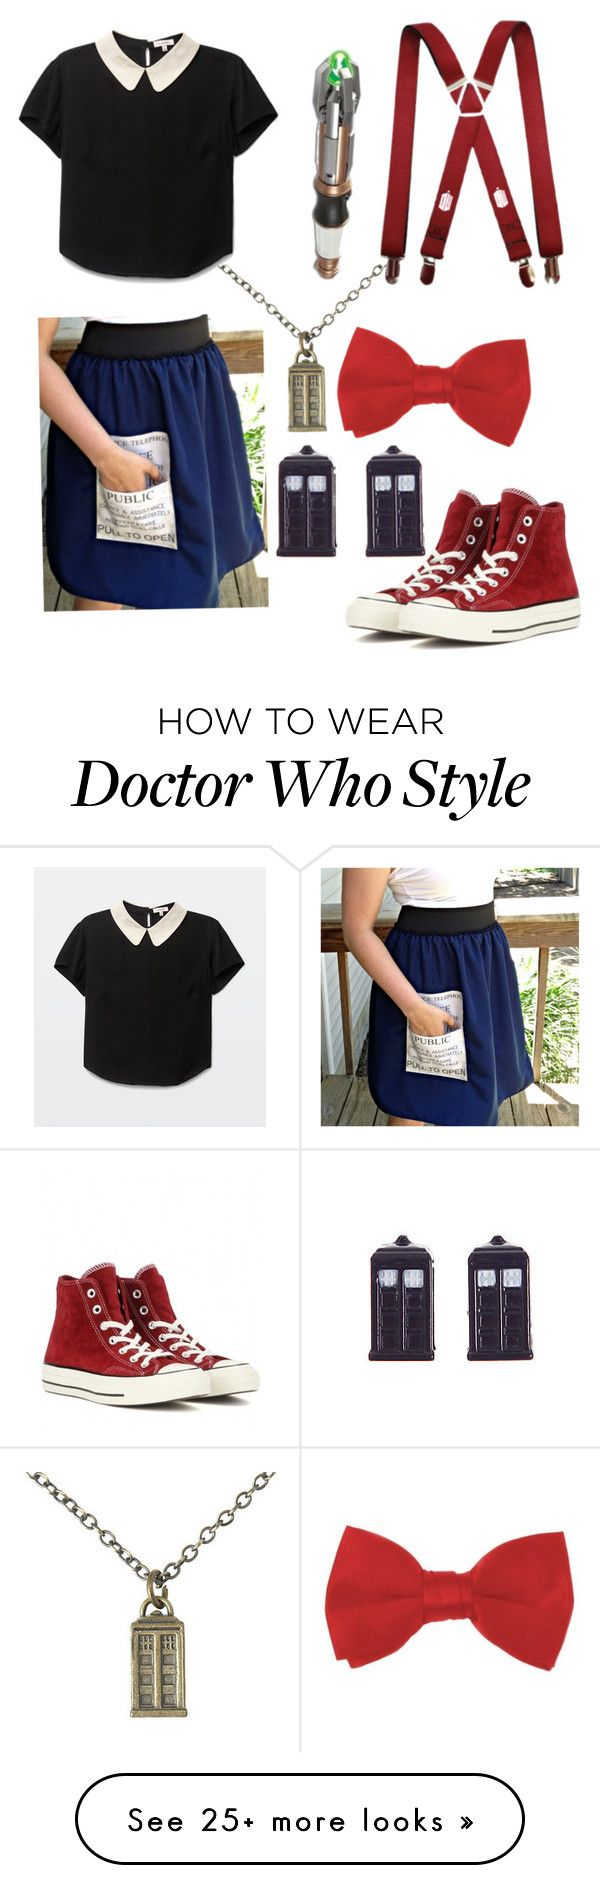 """DOCTOR WHO "" by rosalinapeach on Polyvore featuring Converse"